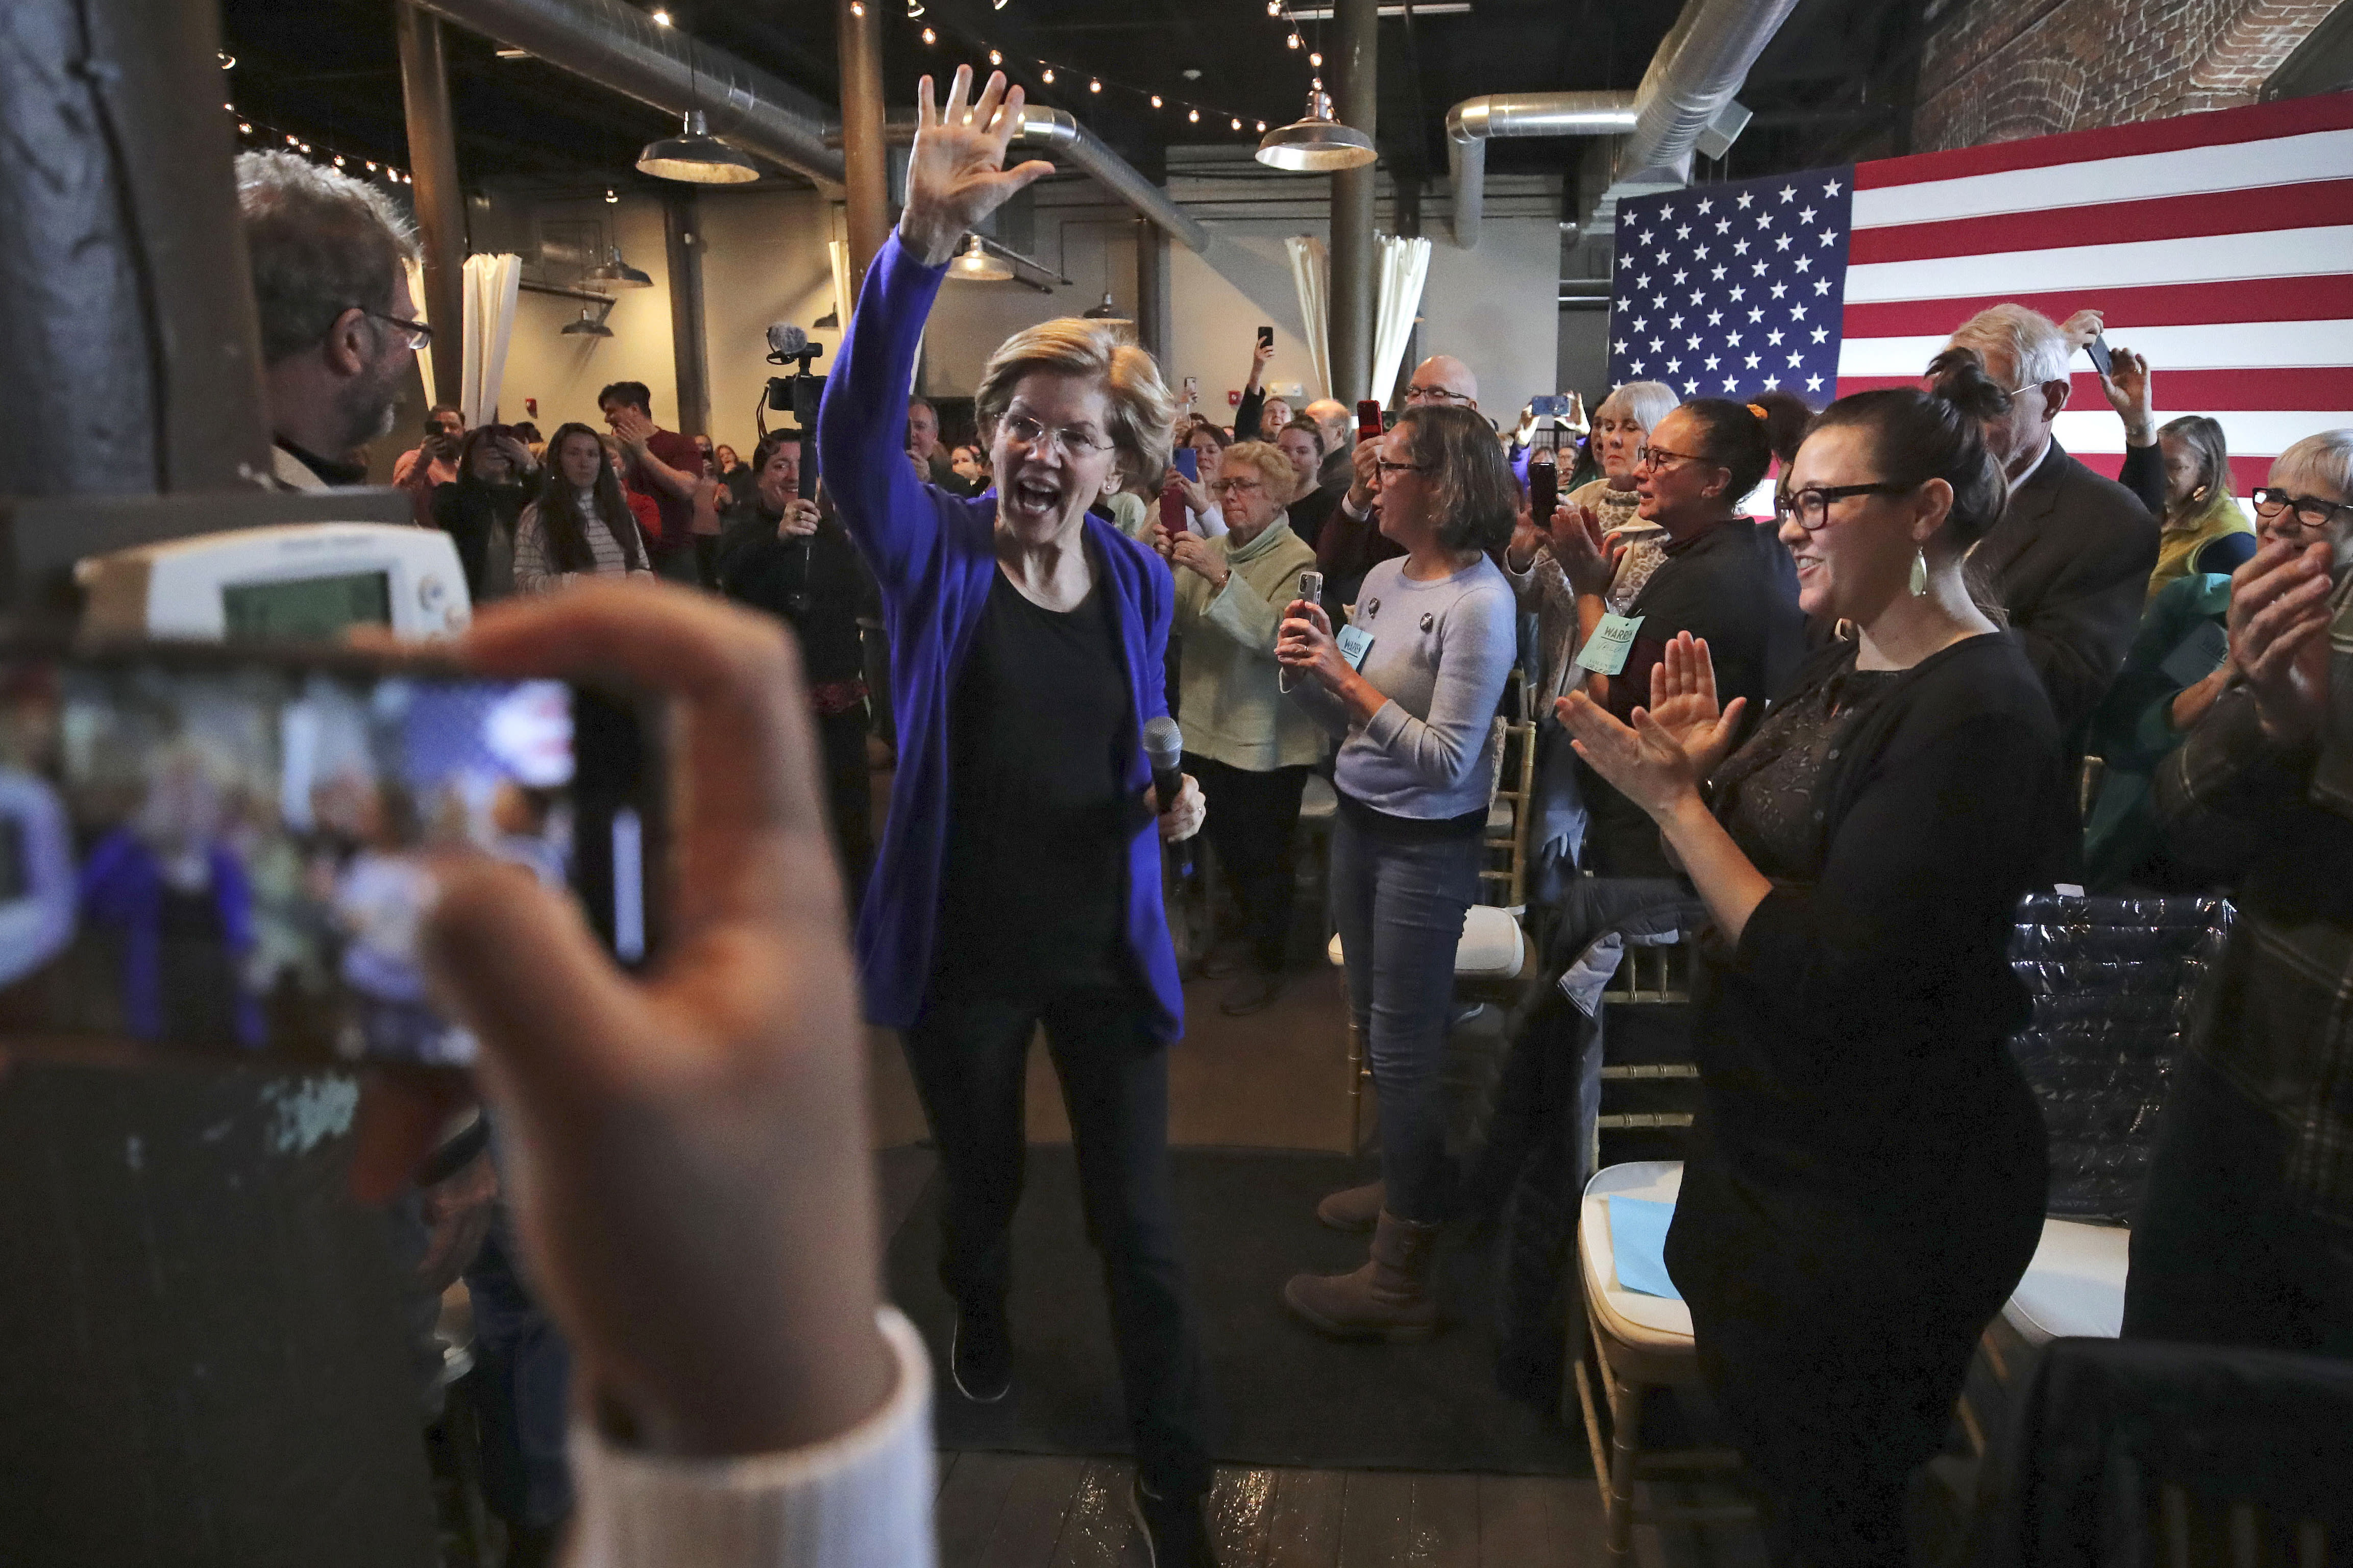 Democratic presidential candidate Sen. Elizabeth Warren, D-Mass., waves as she is introduced at a campaign stop in Dover, N.H., Friday, Jan. 10, 2020. (AP Photo/Charles Krupa)